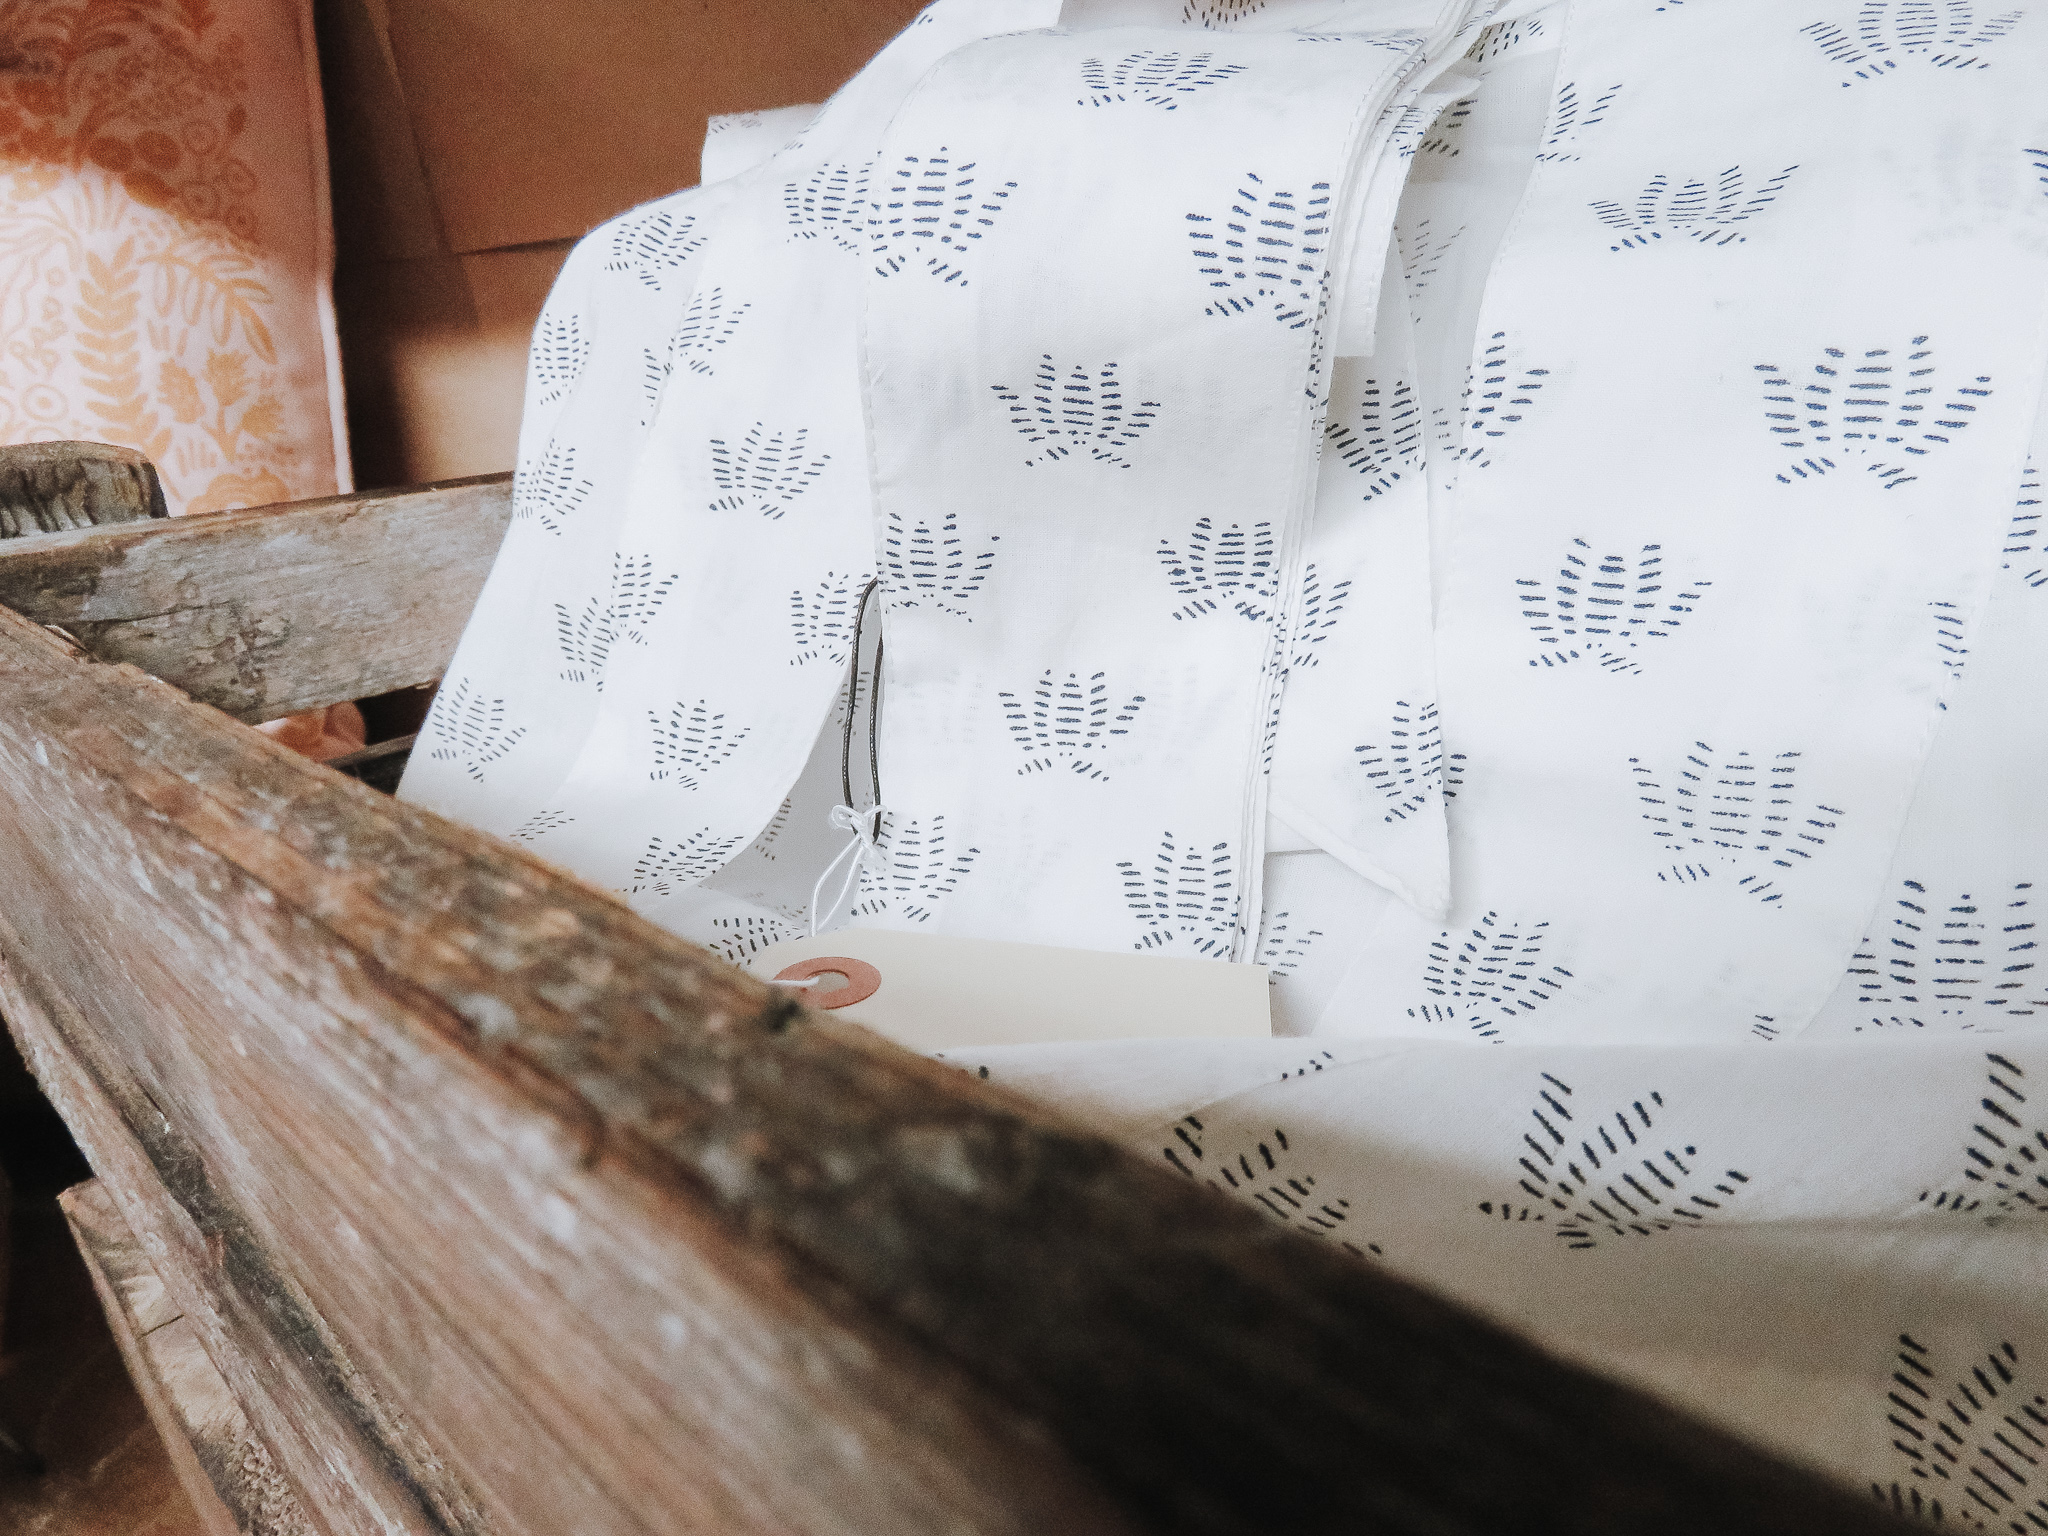 Shower with Love - From 6th Collective is currently stocking these hand-stamped cotton robes. Pair with a bath bomb or slippers and you're all set for Mother's Day!